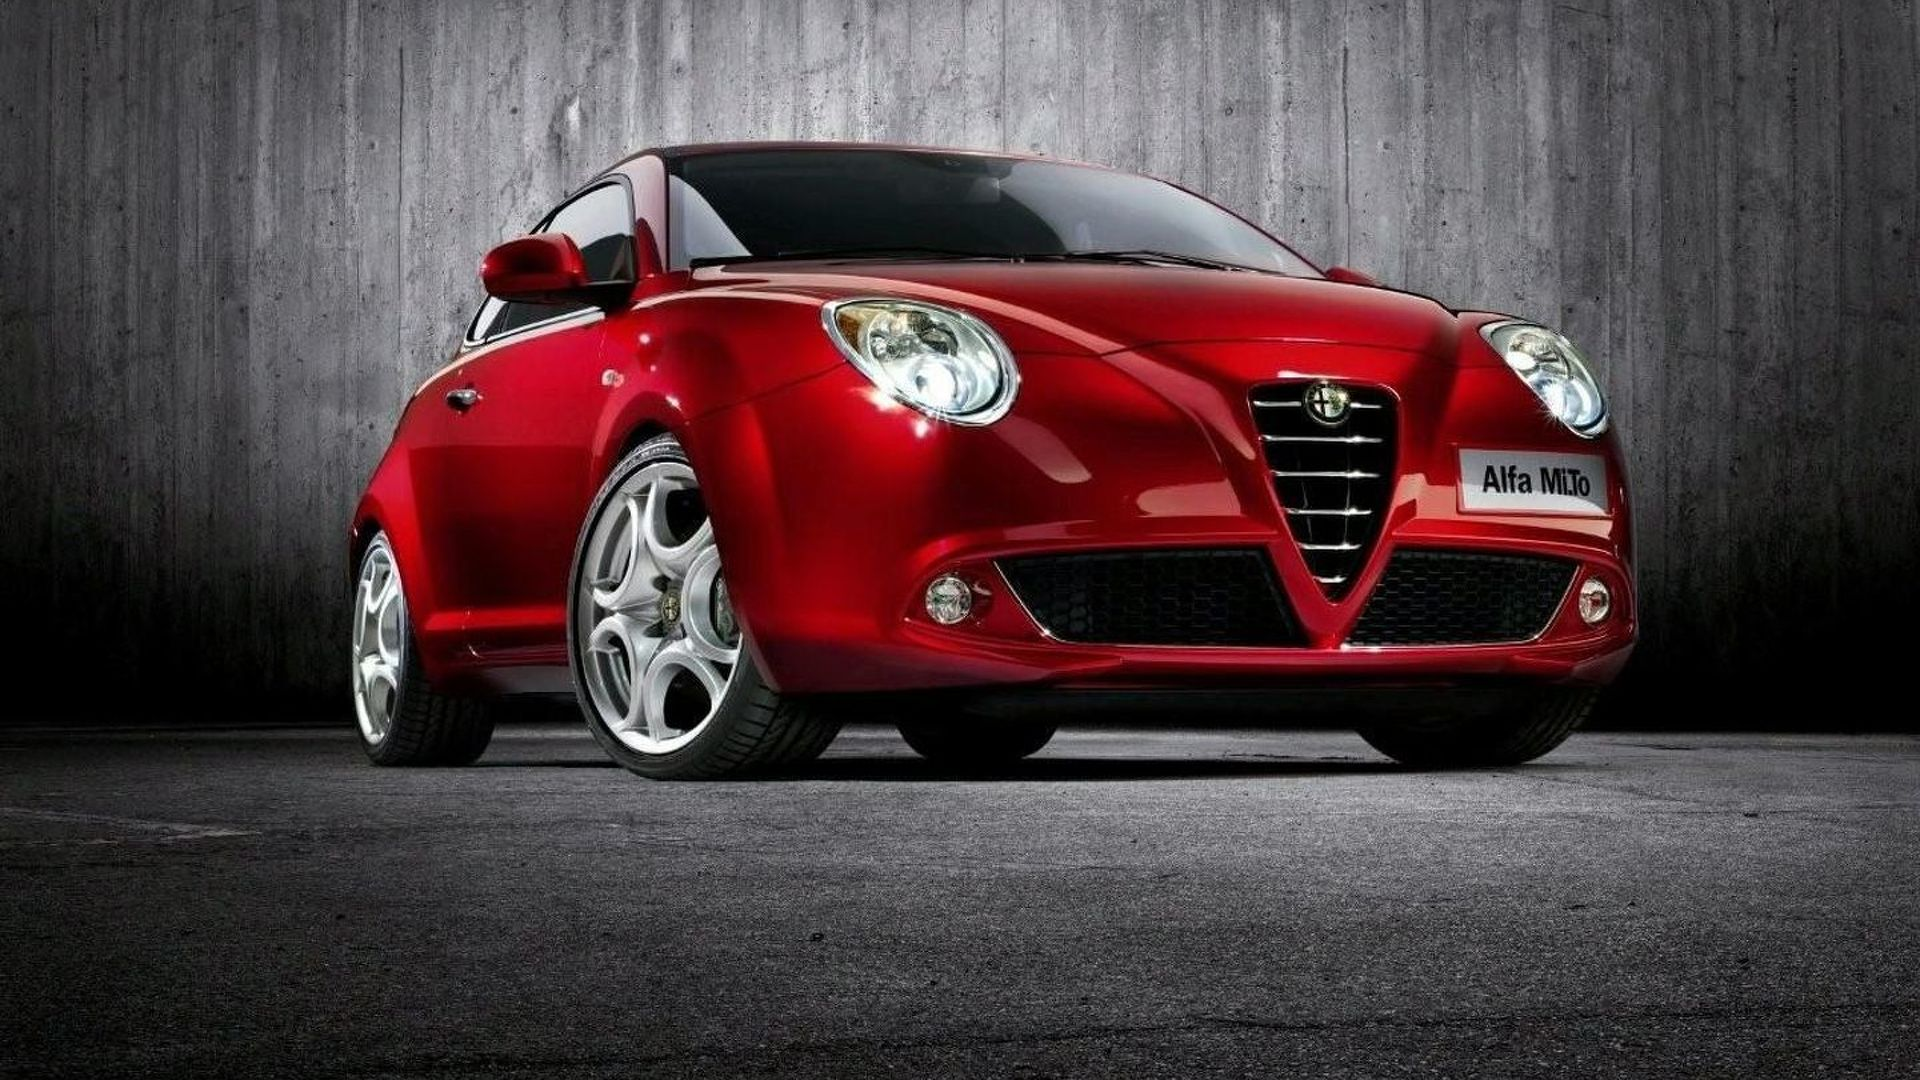 OFFICIAL: Alfa Romeo Mi.To First Images Released